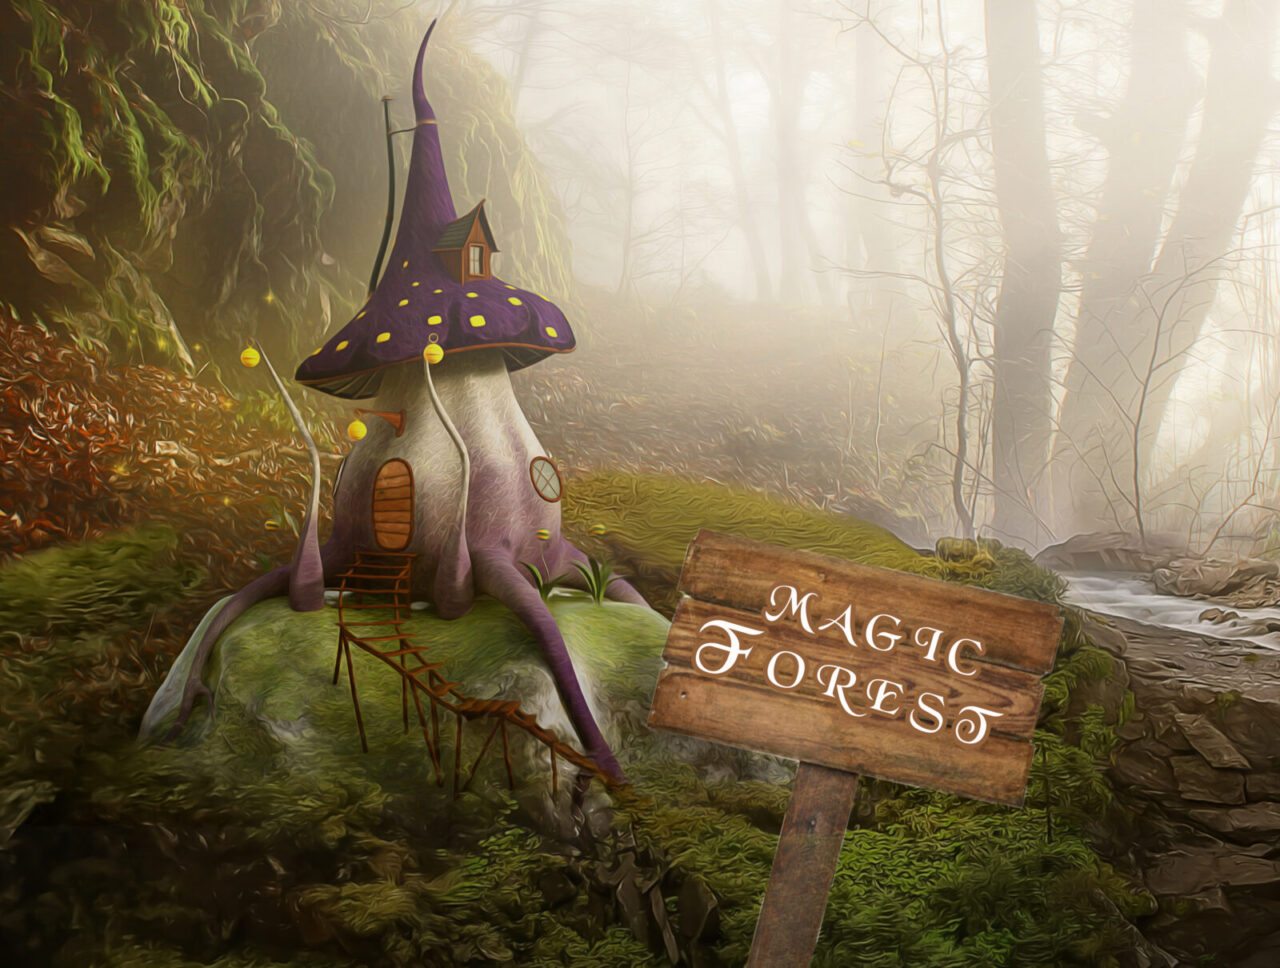 Magic forest - Escape room in Glasgow